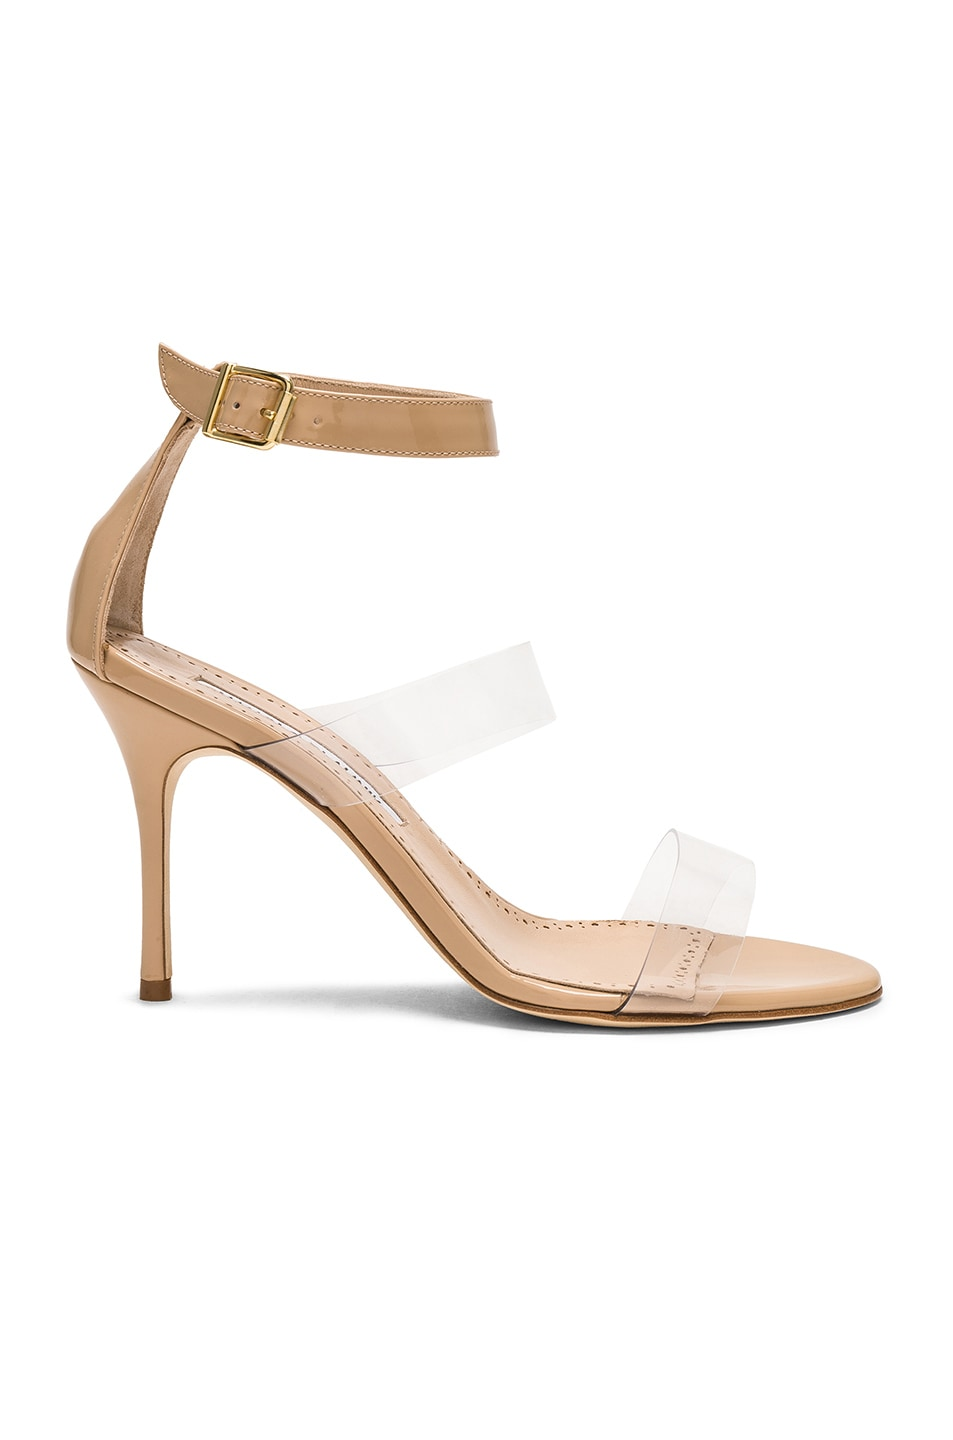 Image 1 of Manolo Blahnik Patent Leather & PVC Kaotic 90 Sandals in Nude Patent & Clear PVC